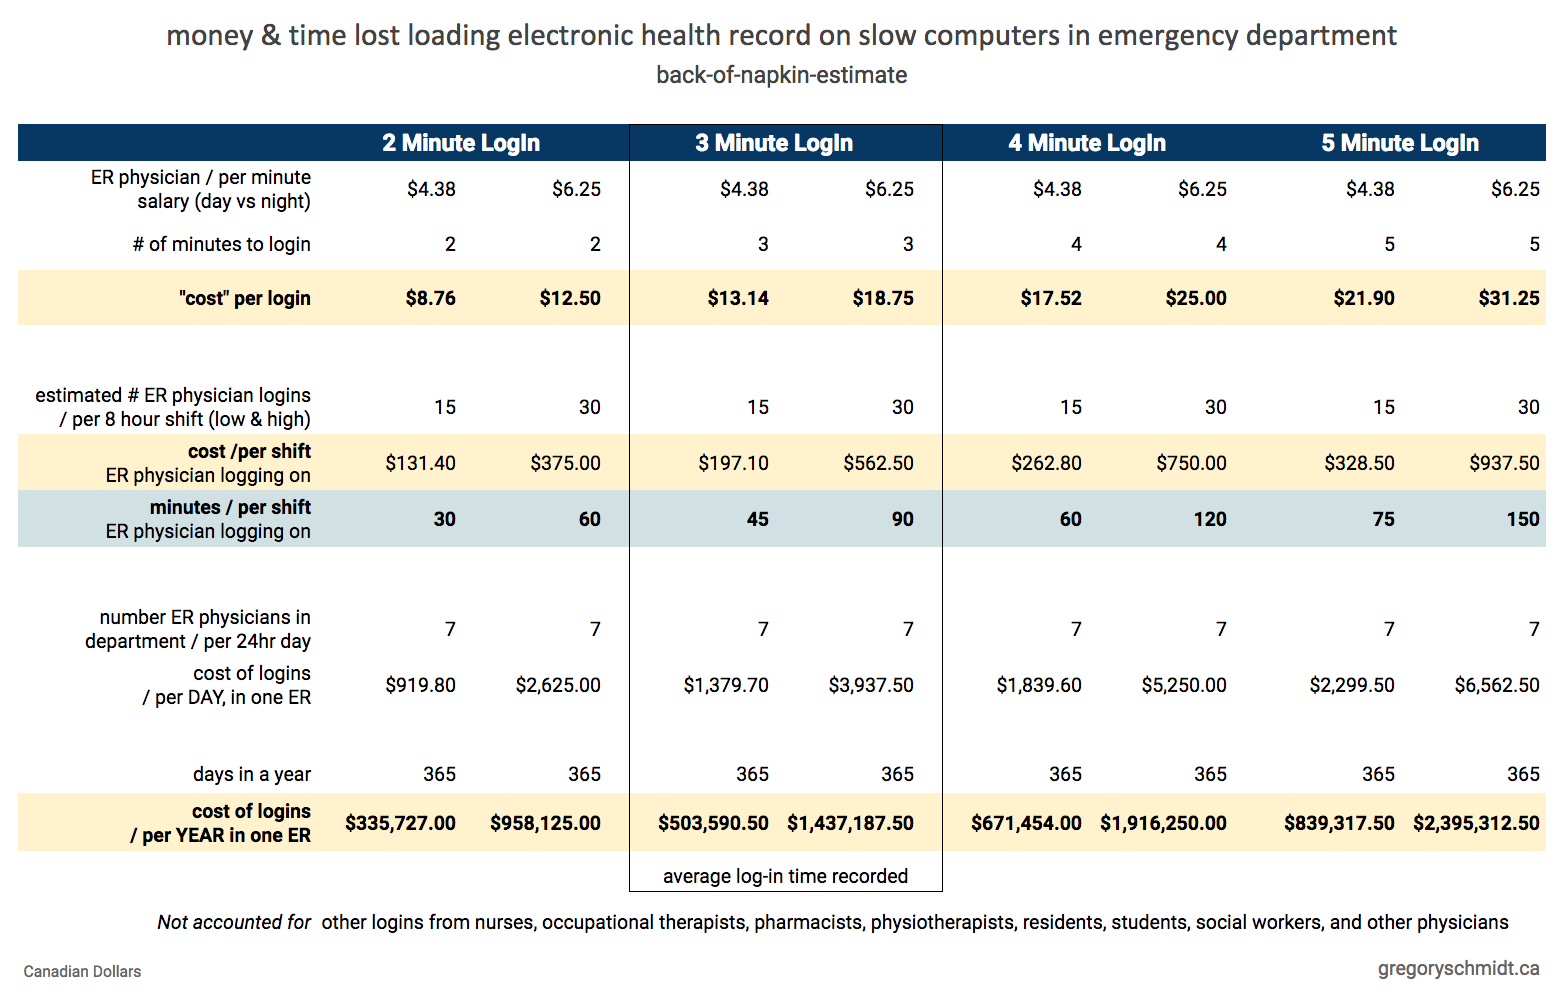 Money & time lost loading electronic health record on slow computers in emergency department